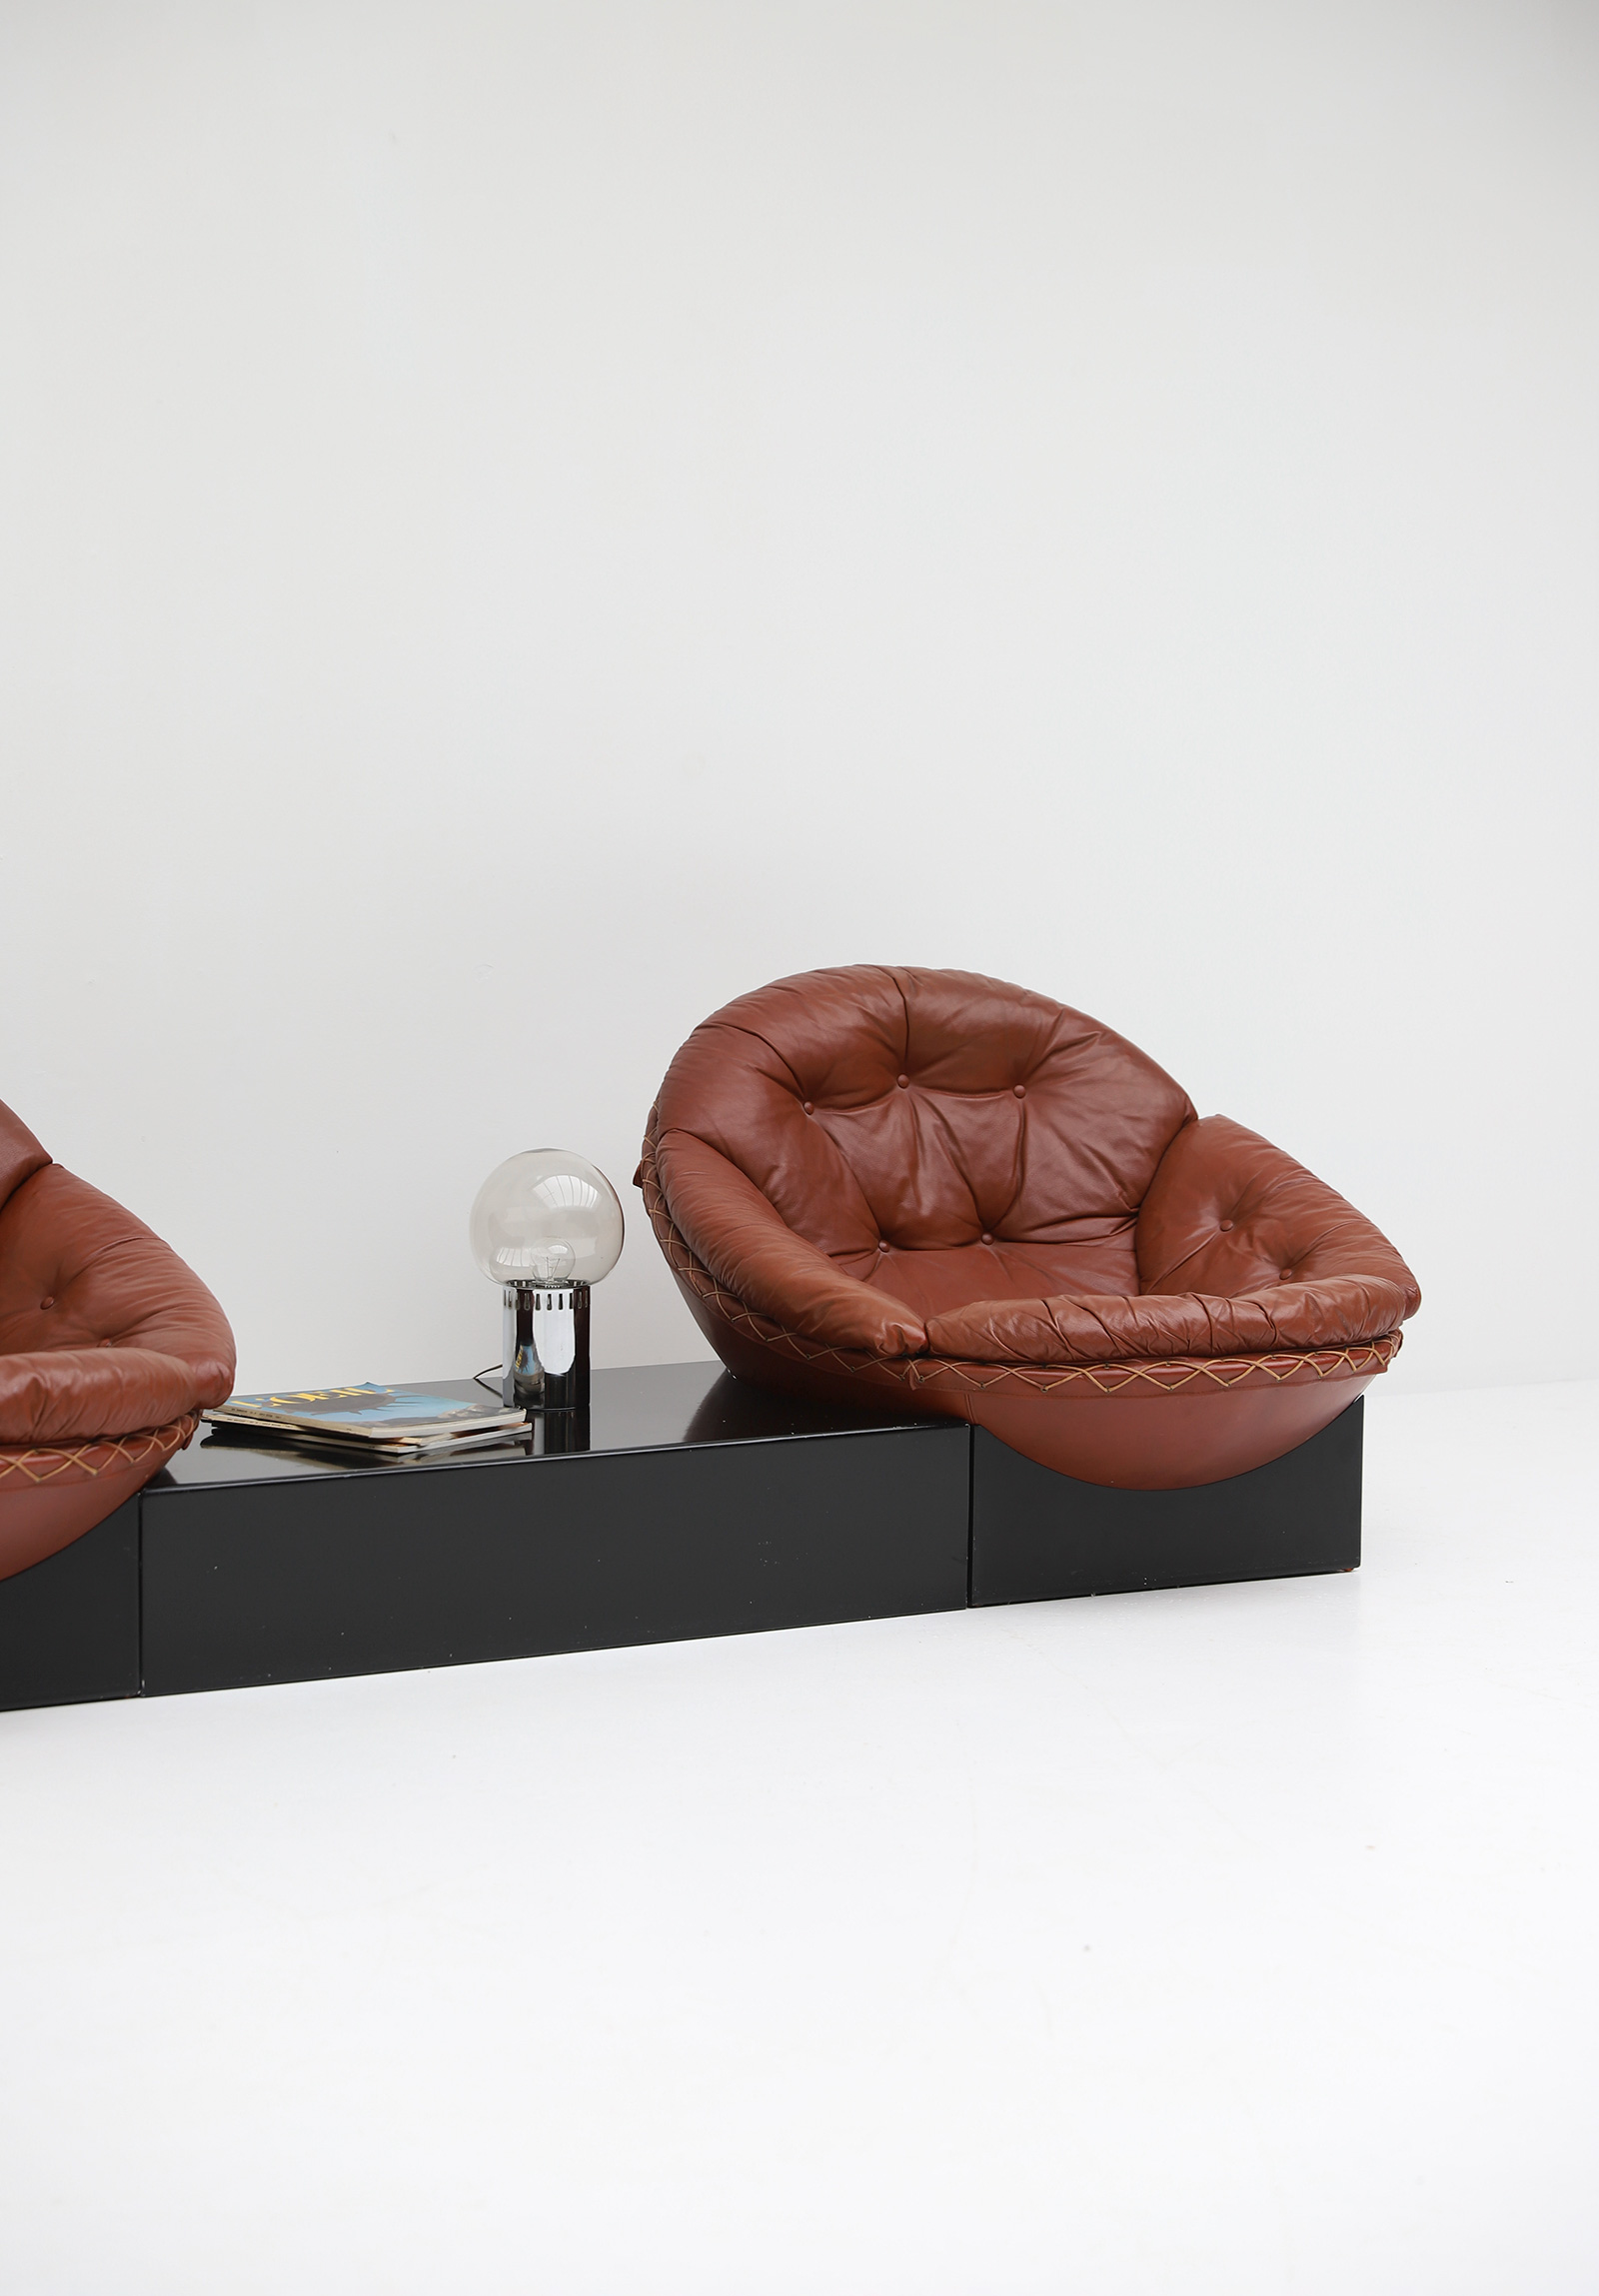 Leather Lounge Chairs by Illum Wikkelso for Ryesberg 1970simage 9